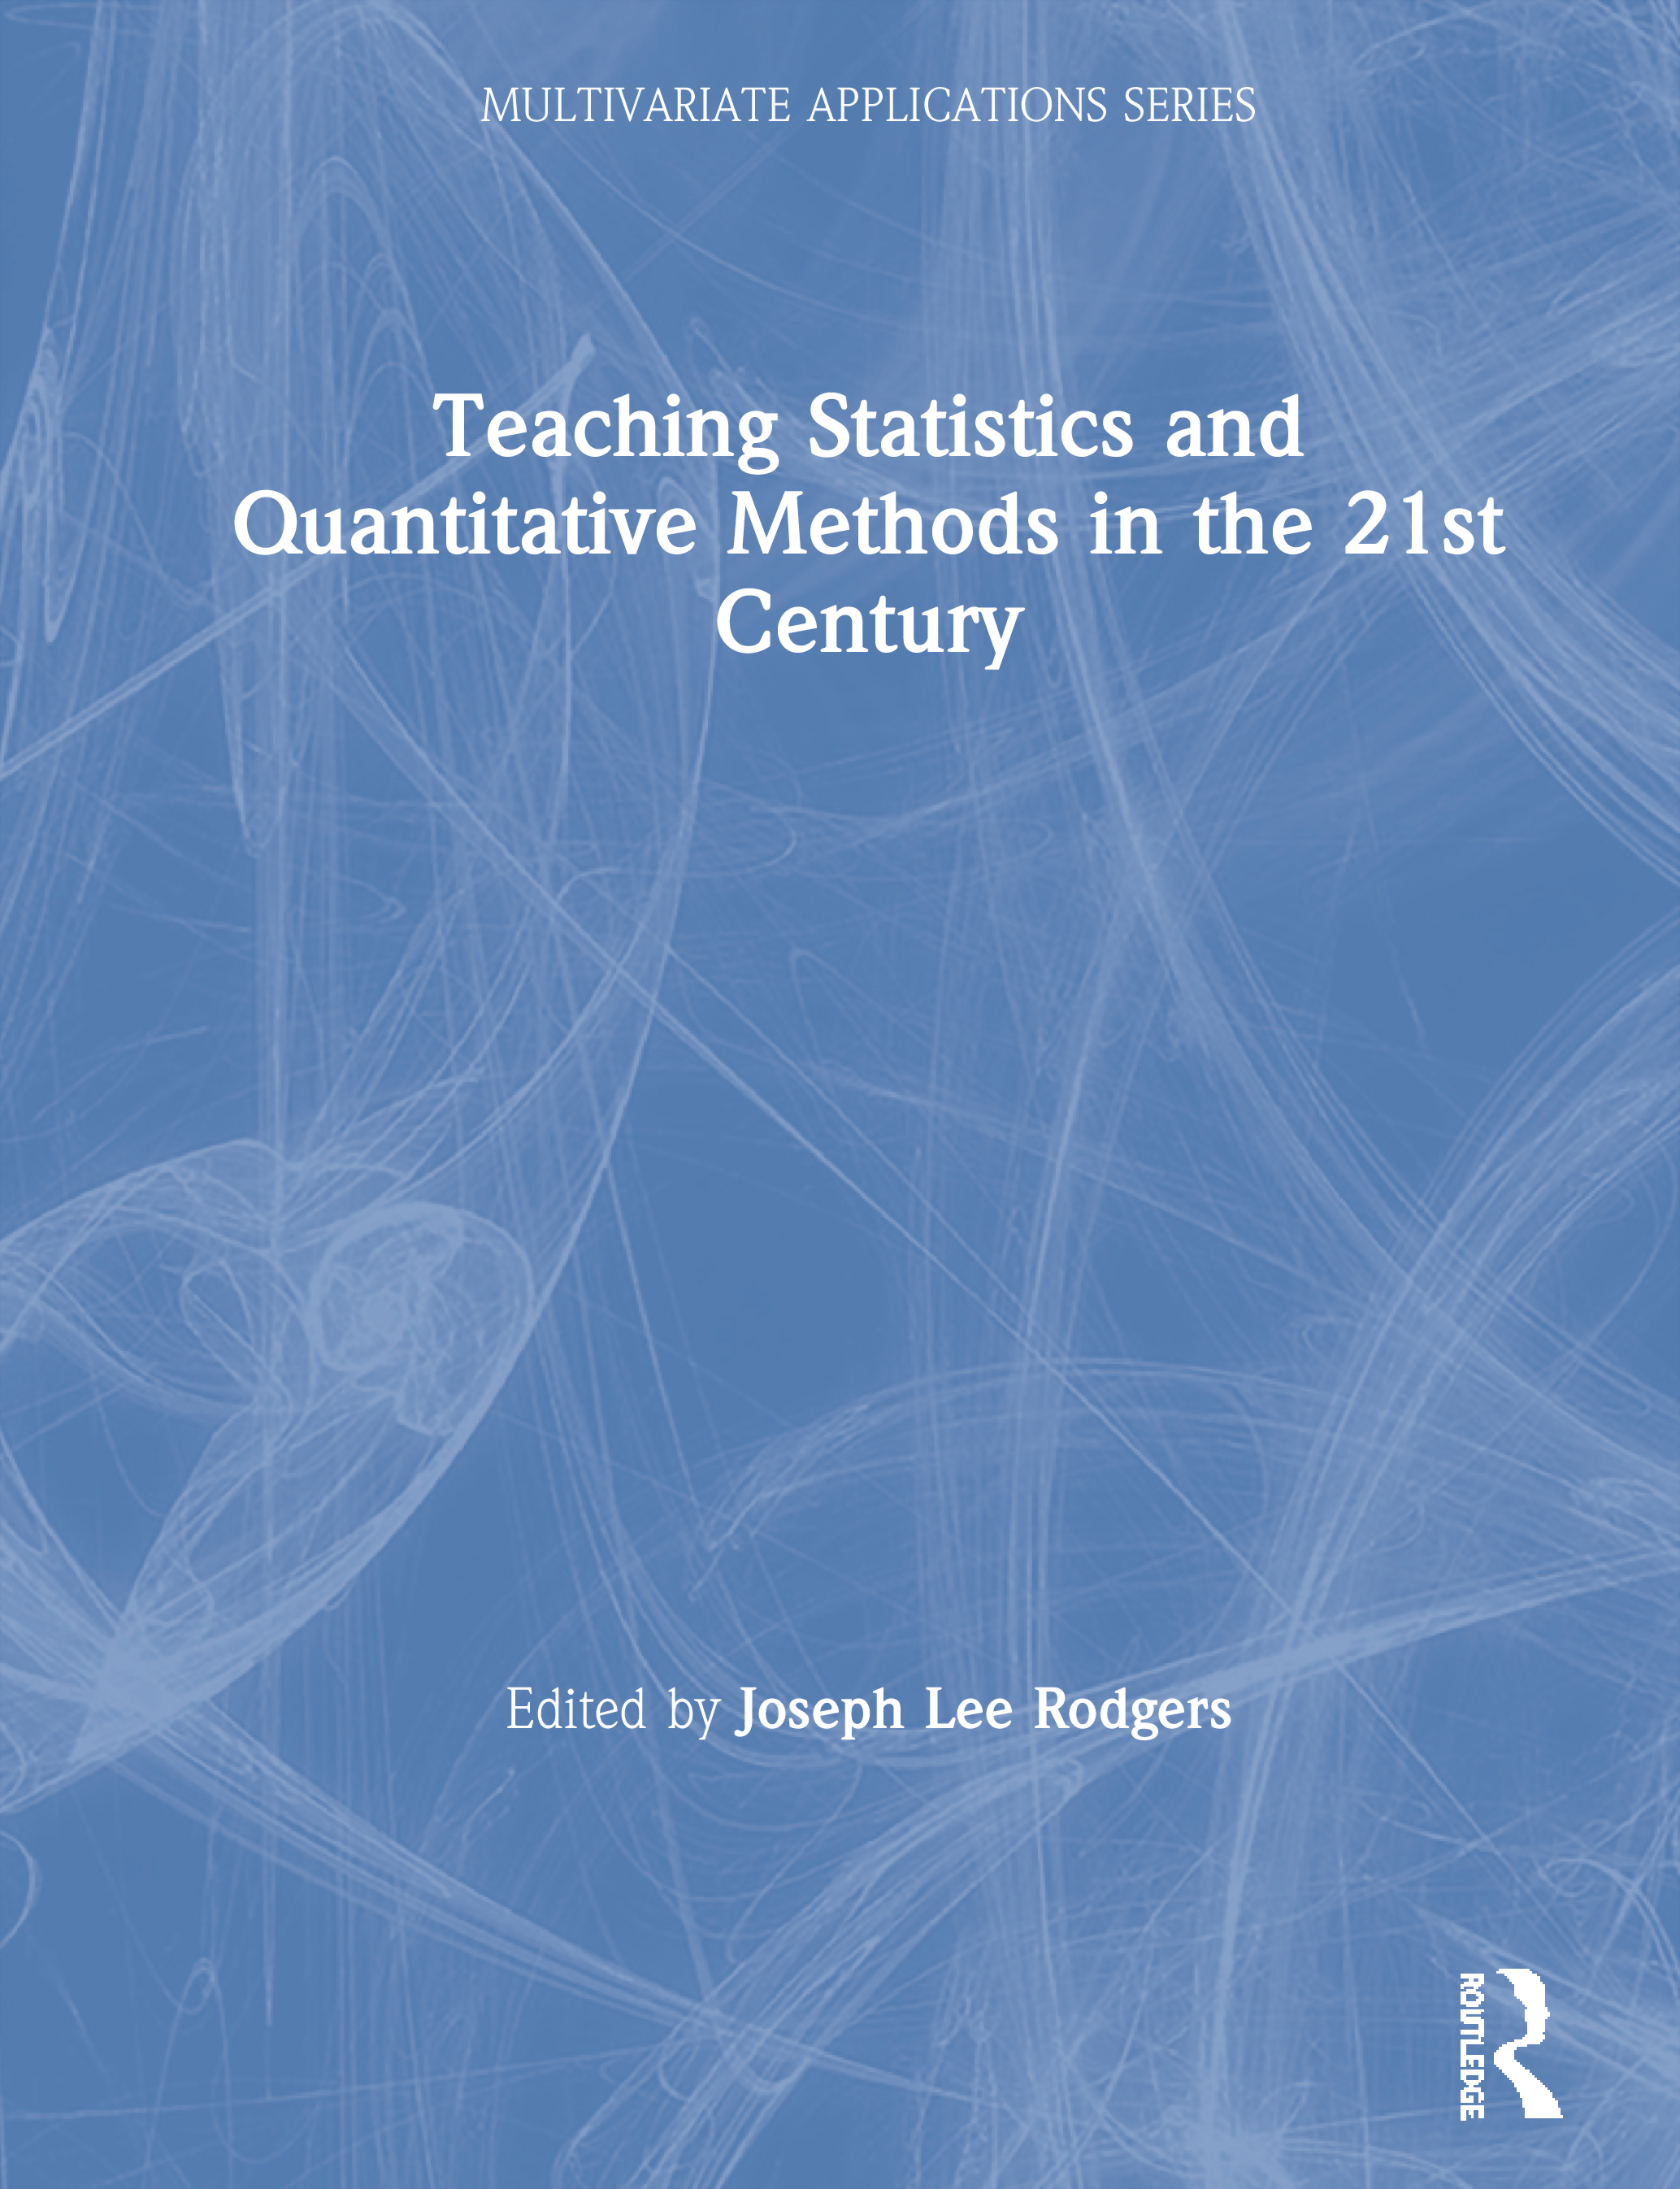 Teaching Statistics and Quantitative Methods book cover